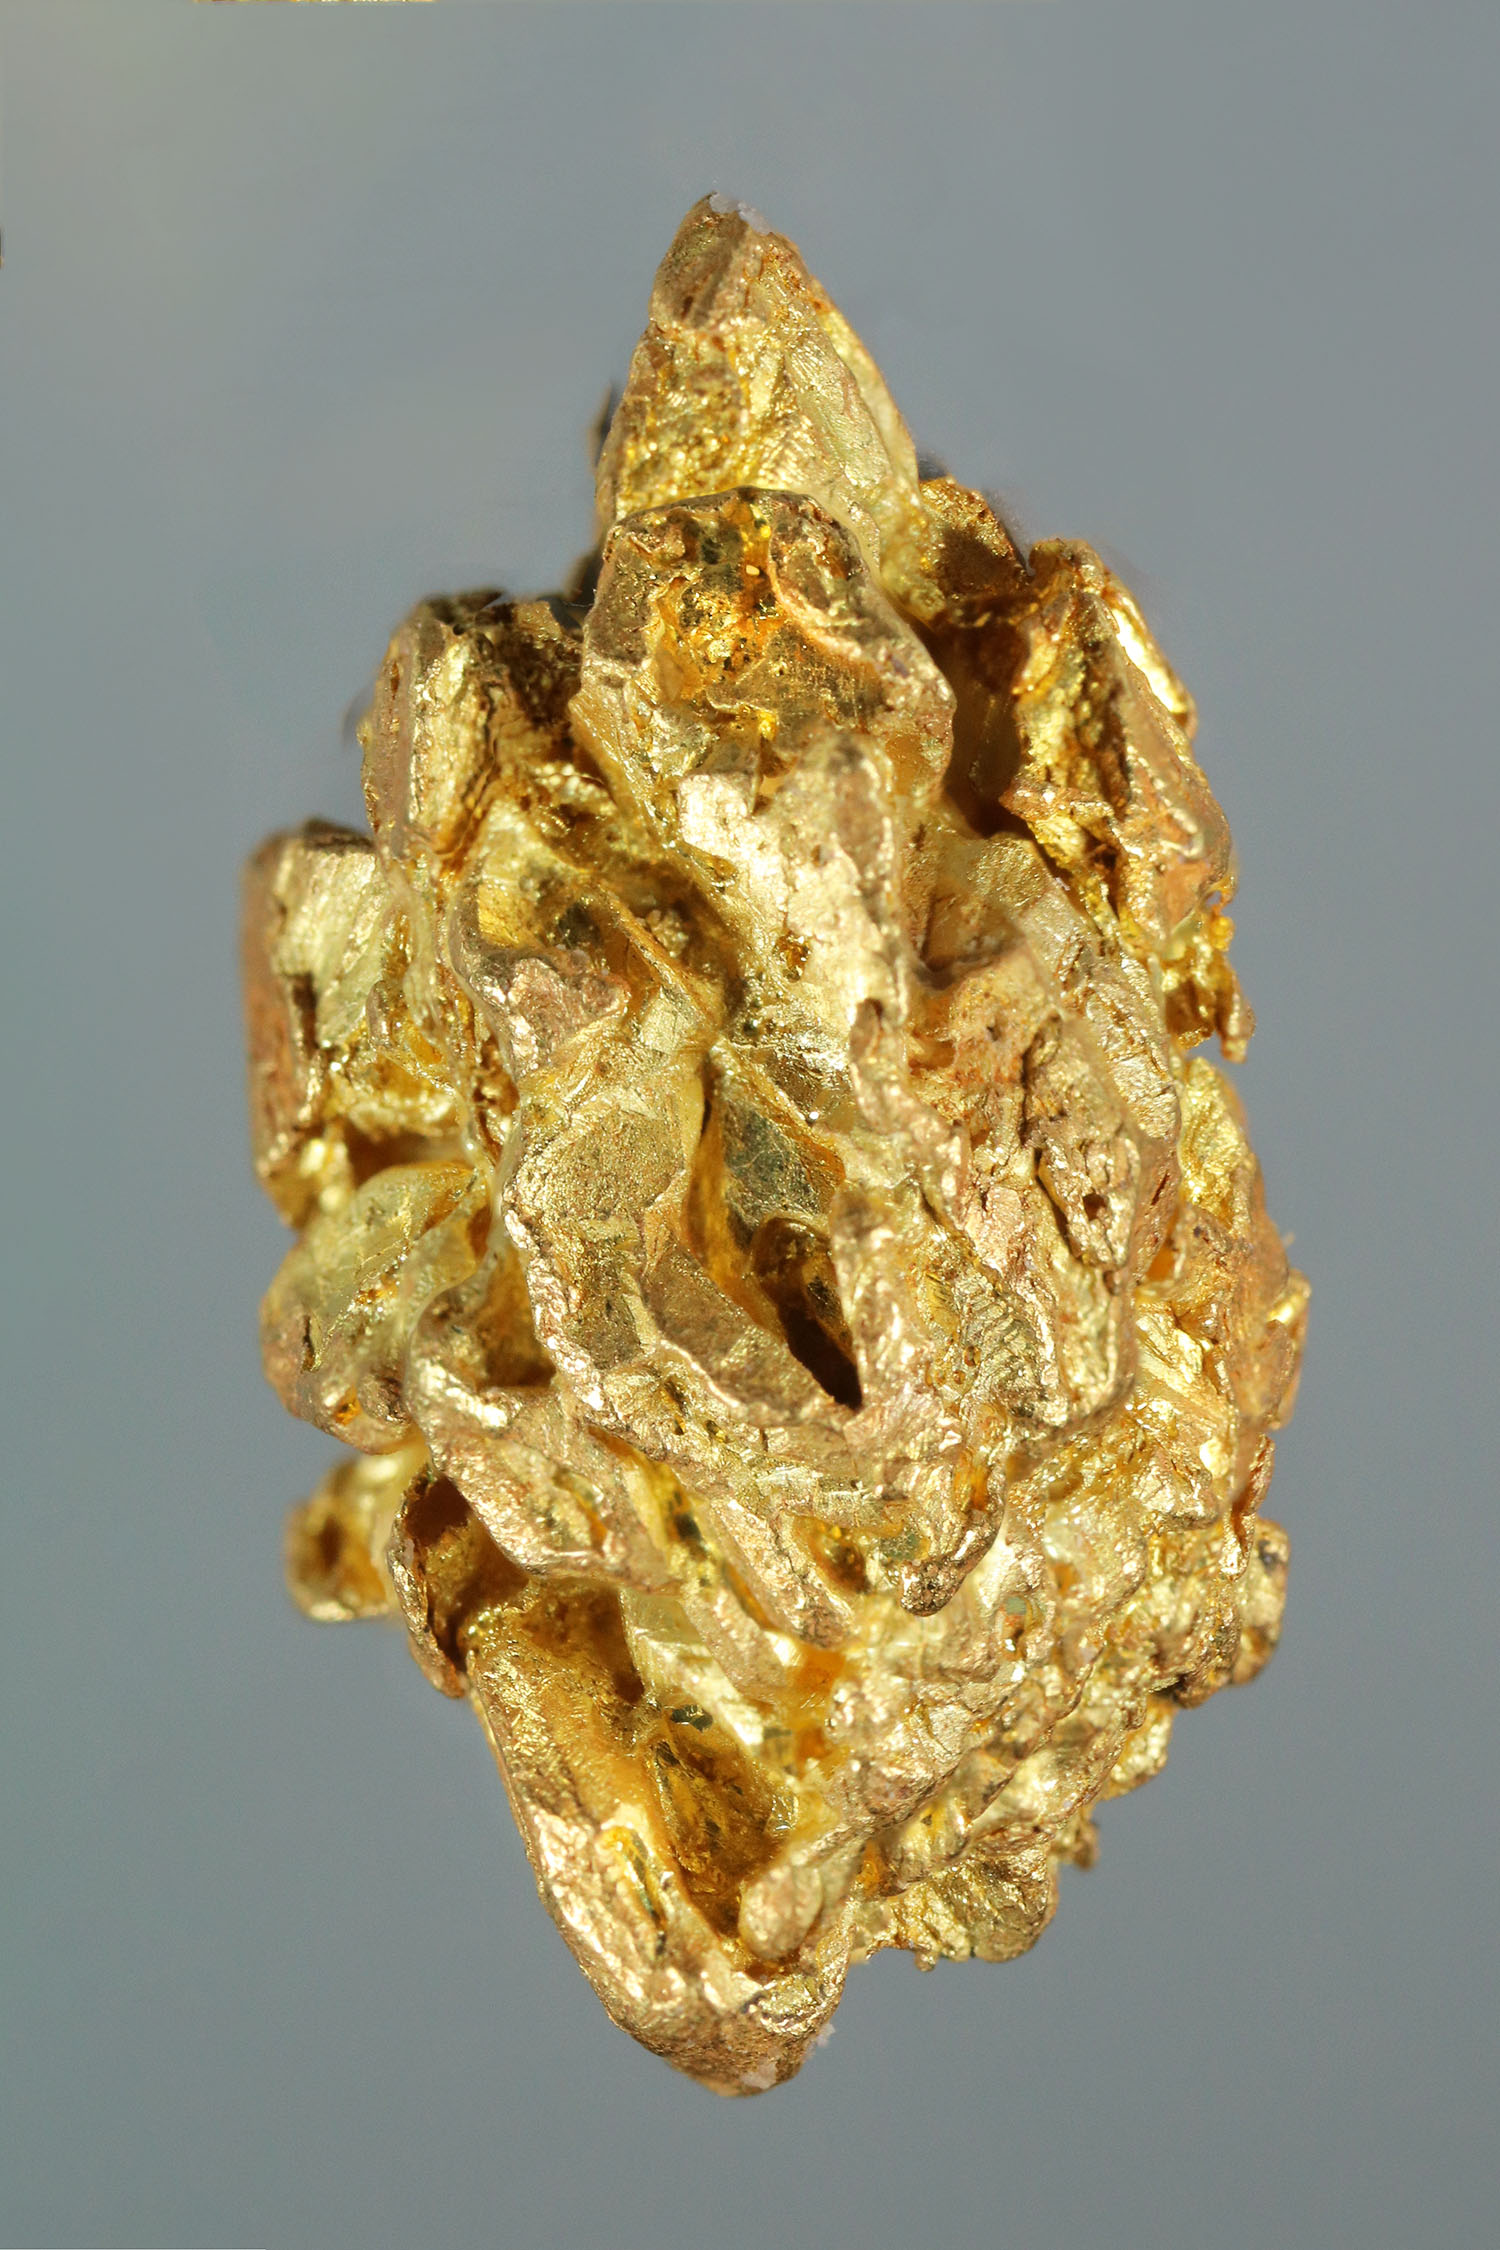 Sharp and Faceted Yukon Gold Crystal Nugget